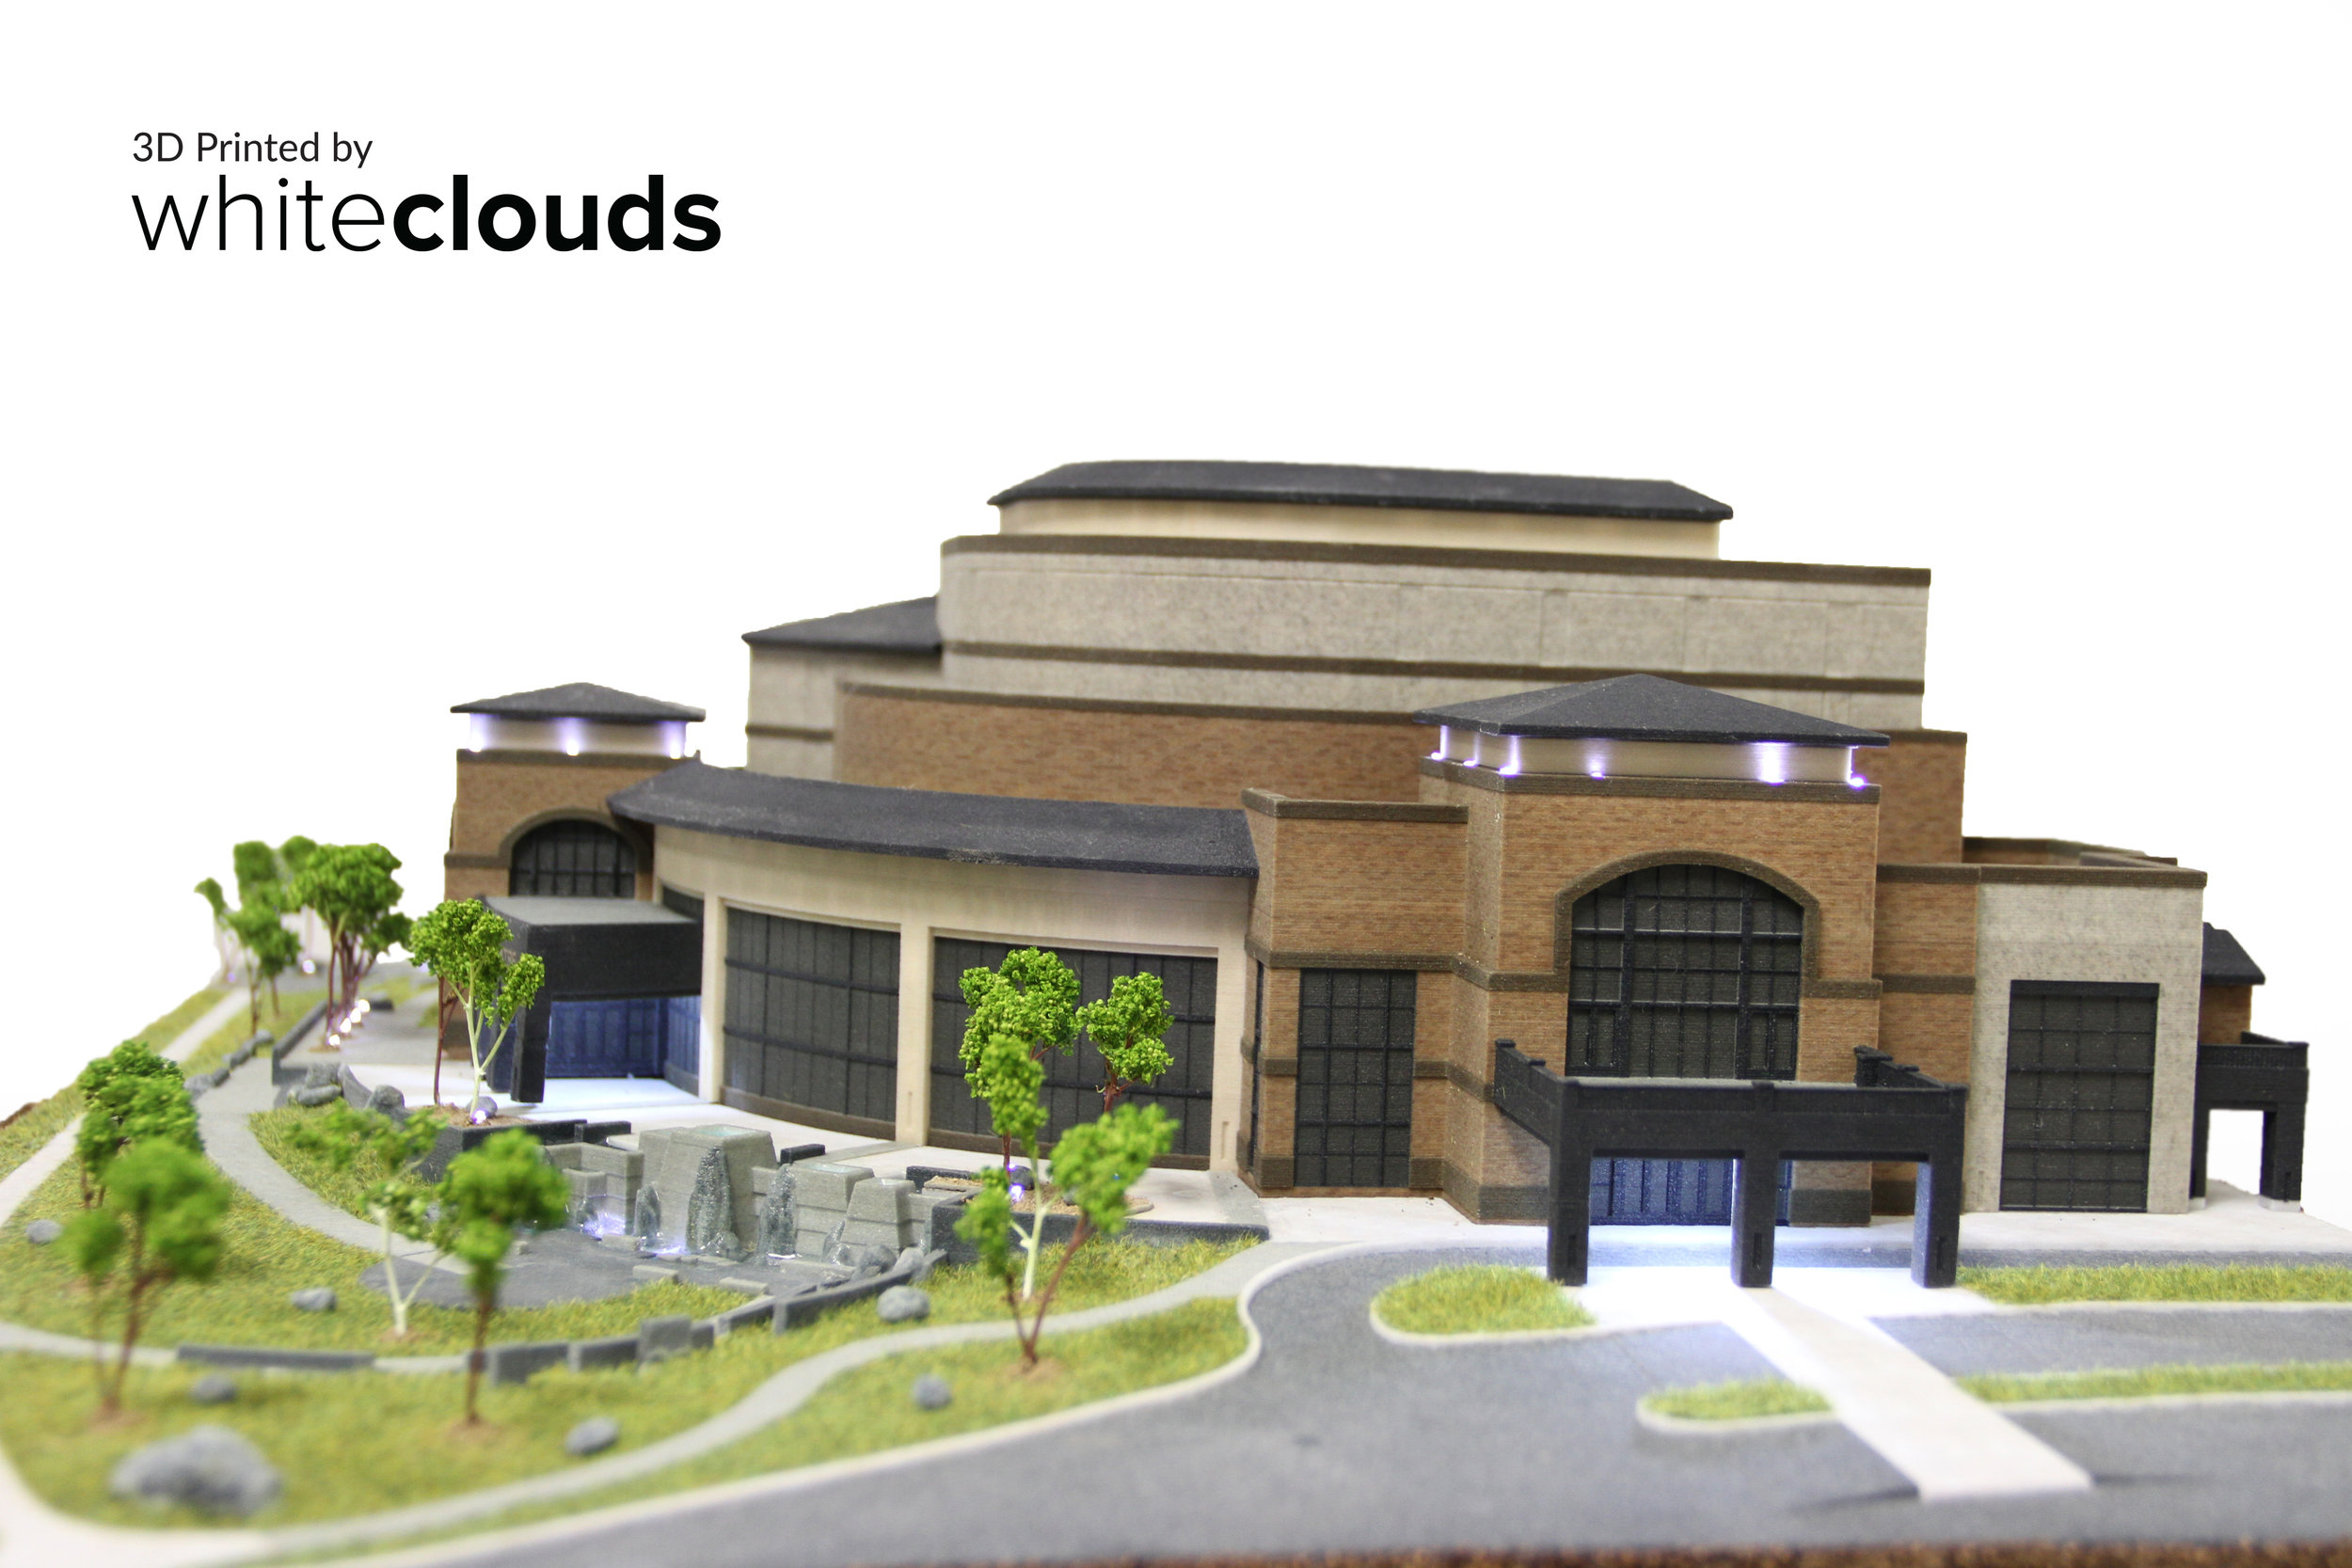 3D-Printed-WhiteClouds-Theater-Architectural-Hale-Center-Theater-2.JPG